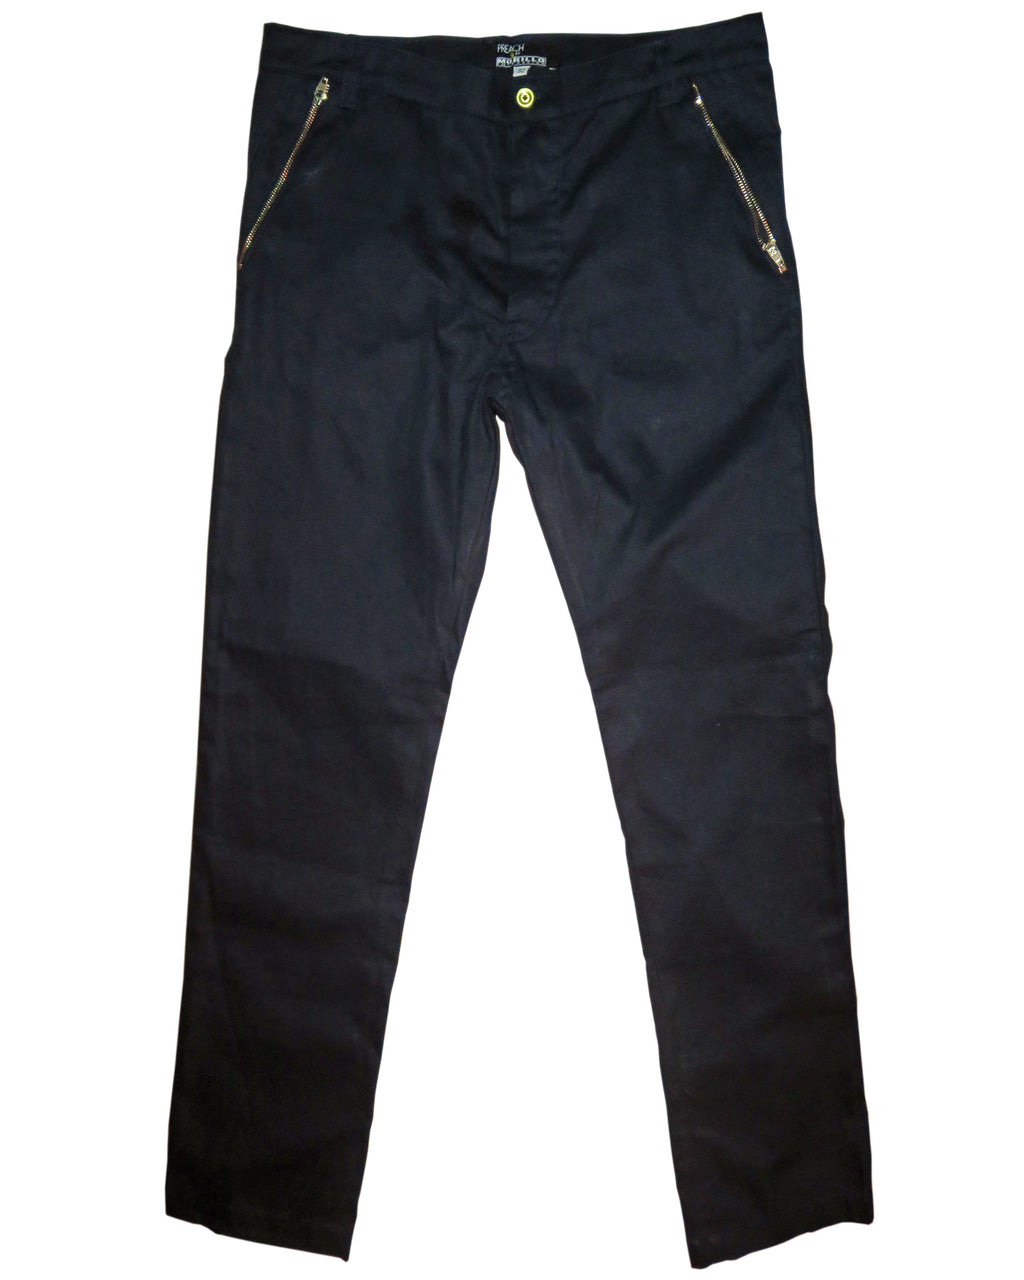 SLIM FITTED COTTON TWILL ZIPPED PANT Pants - MORILLO ENTERPRISE